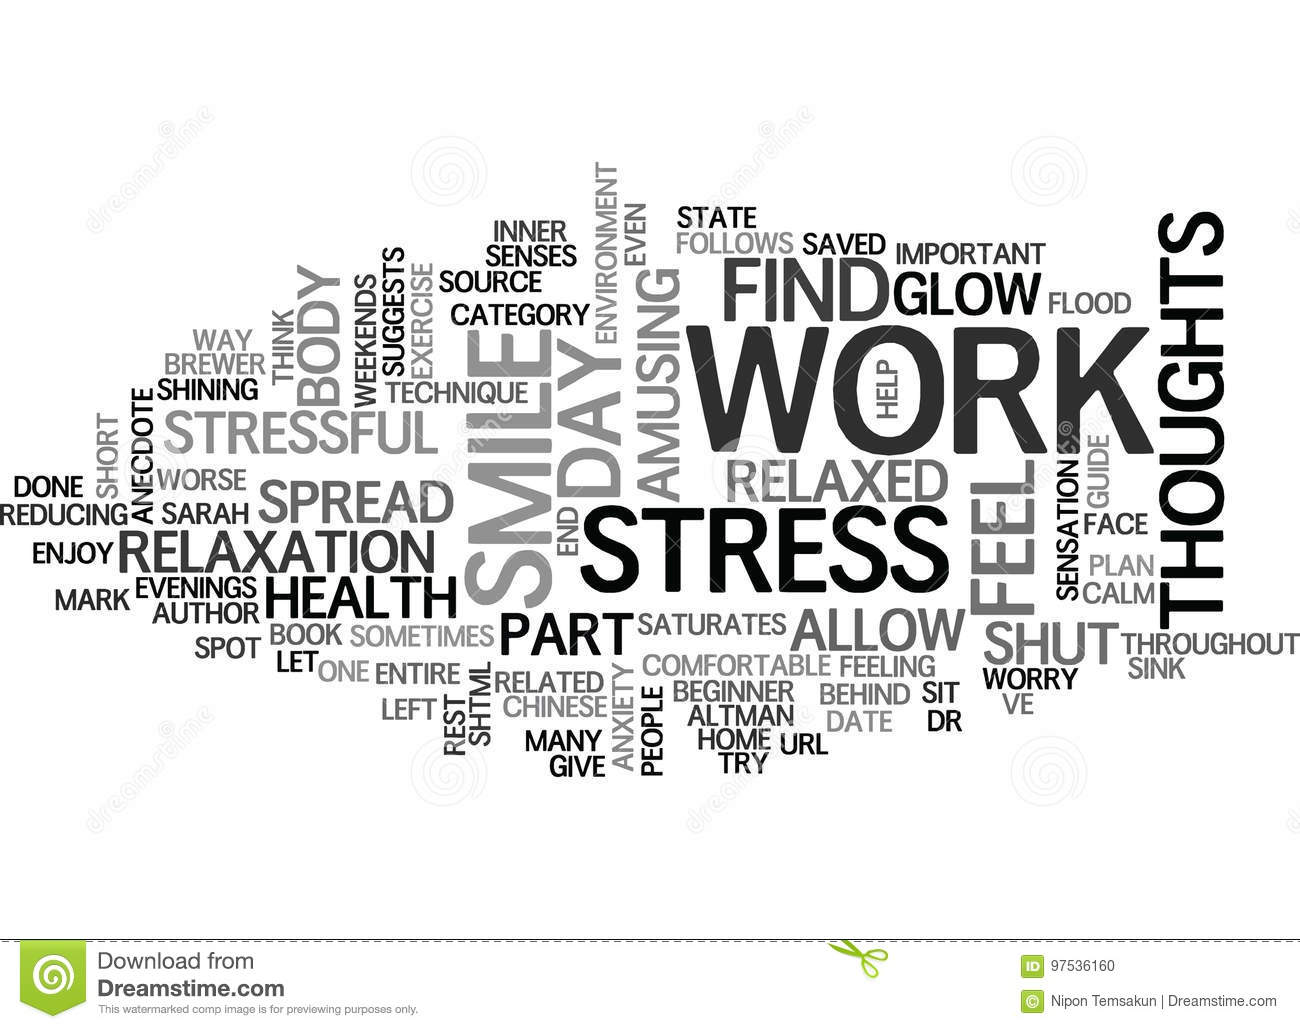 End Work Related Stress Word Cloud Concept Stock Illustration Illustration Of Sink Body 97536160